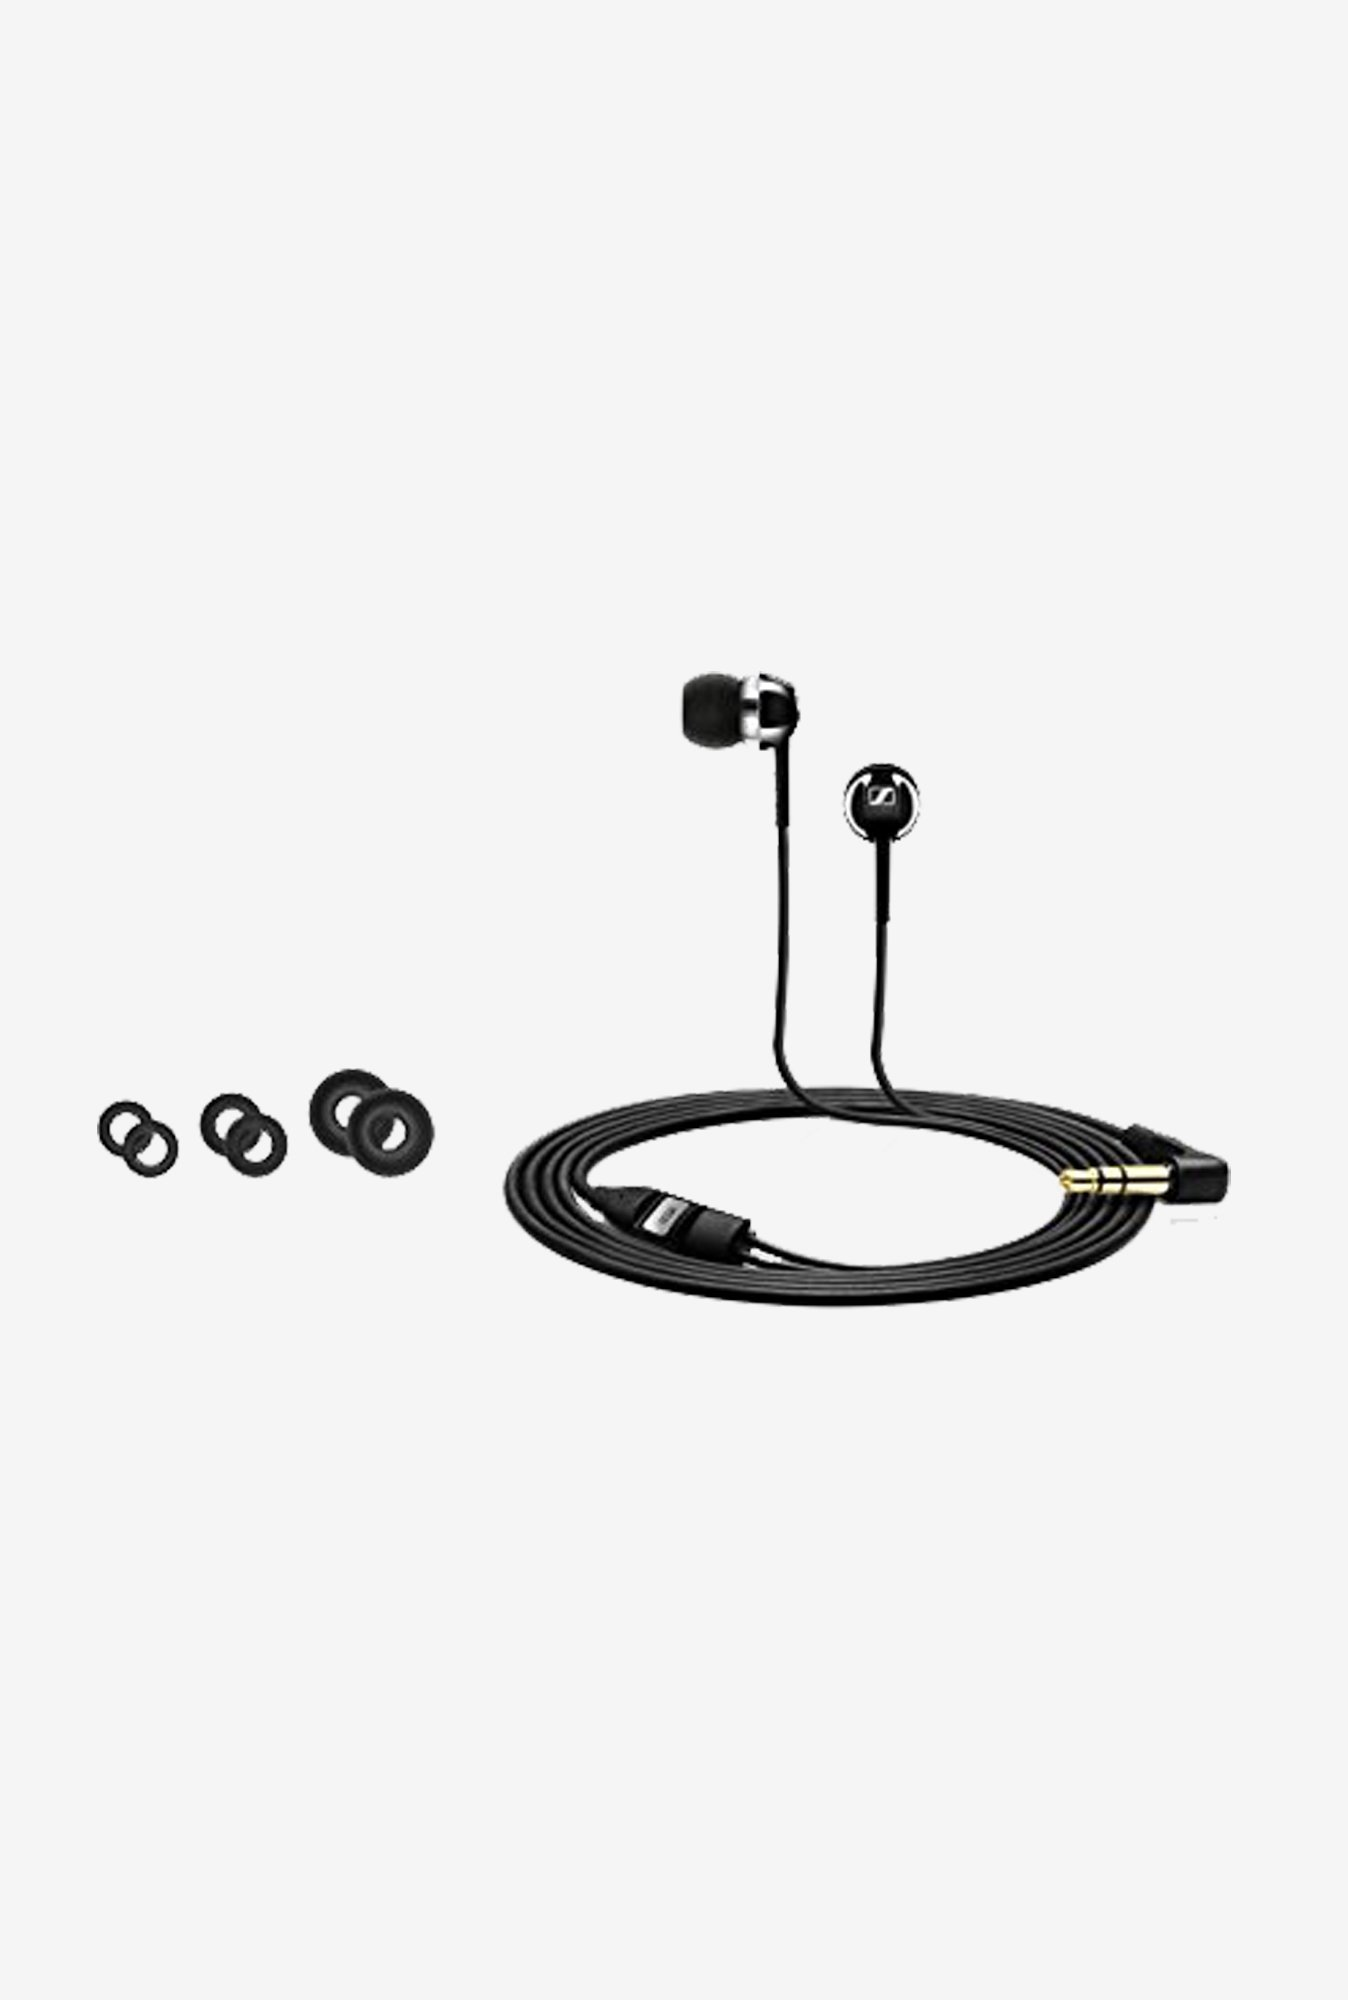 Sennheiser CX 5.00G White In-Ear Canal Headset